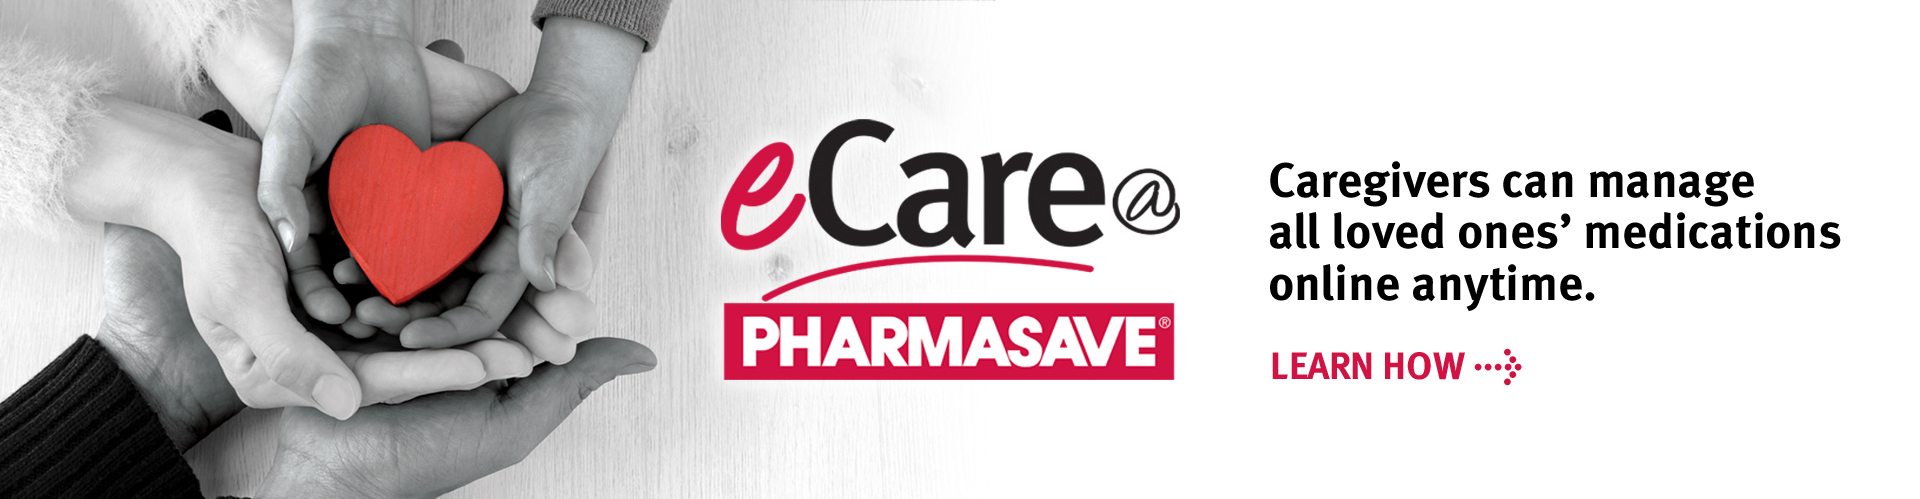 Manage all loved ones' medications online